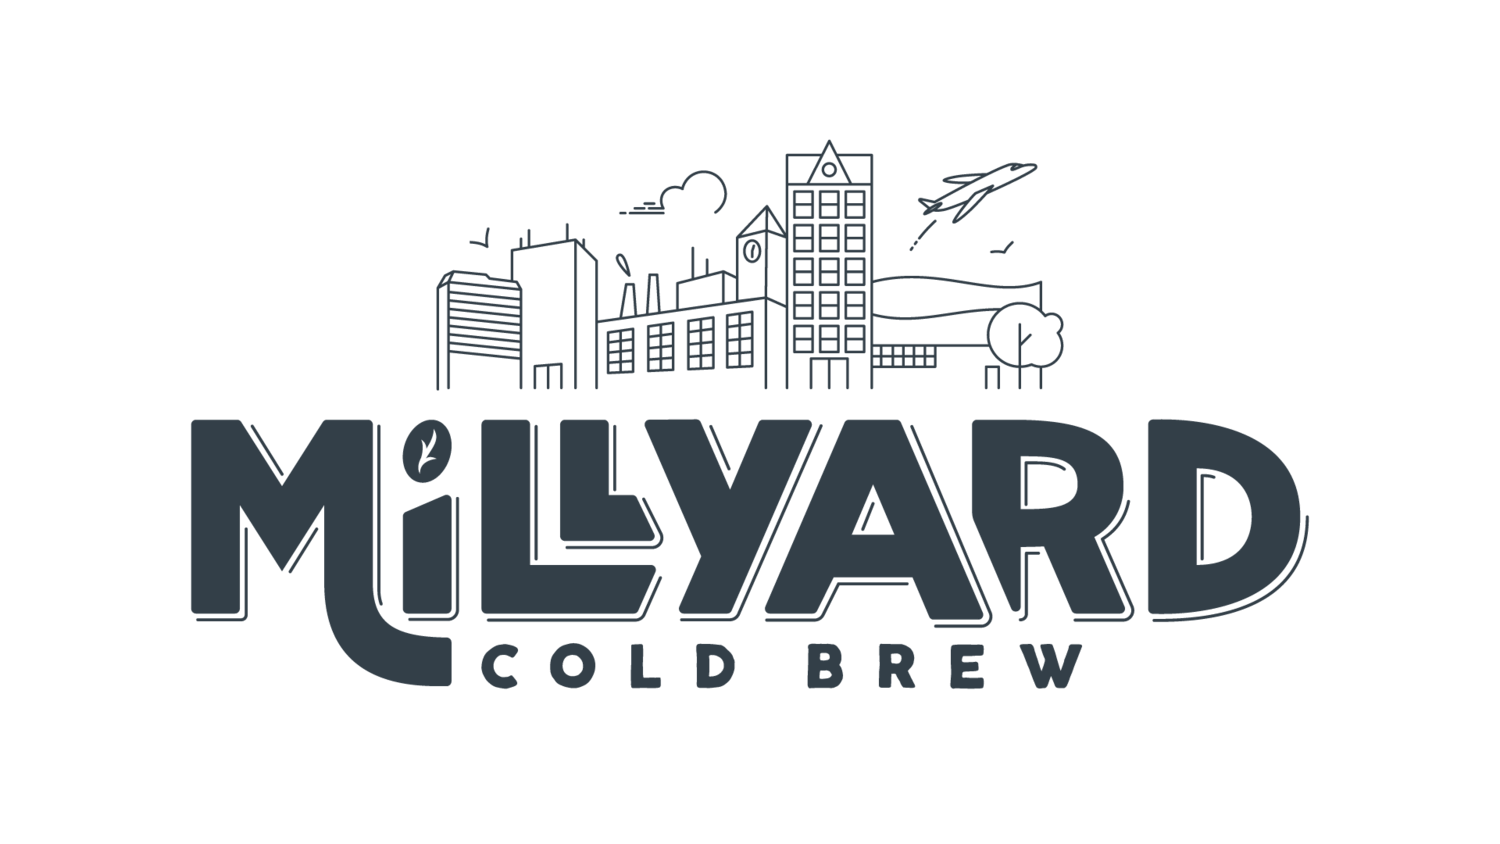 millyard cold brew coffee logo